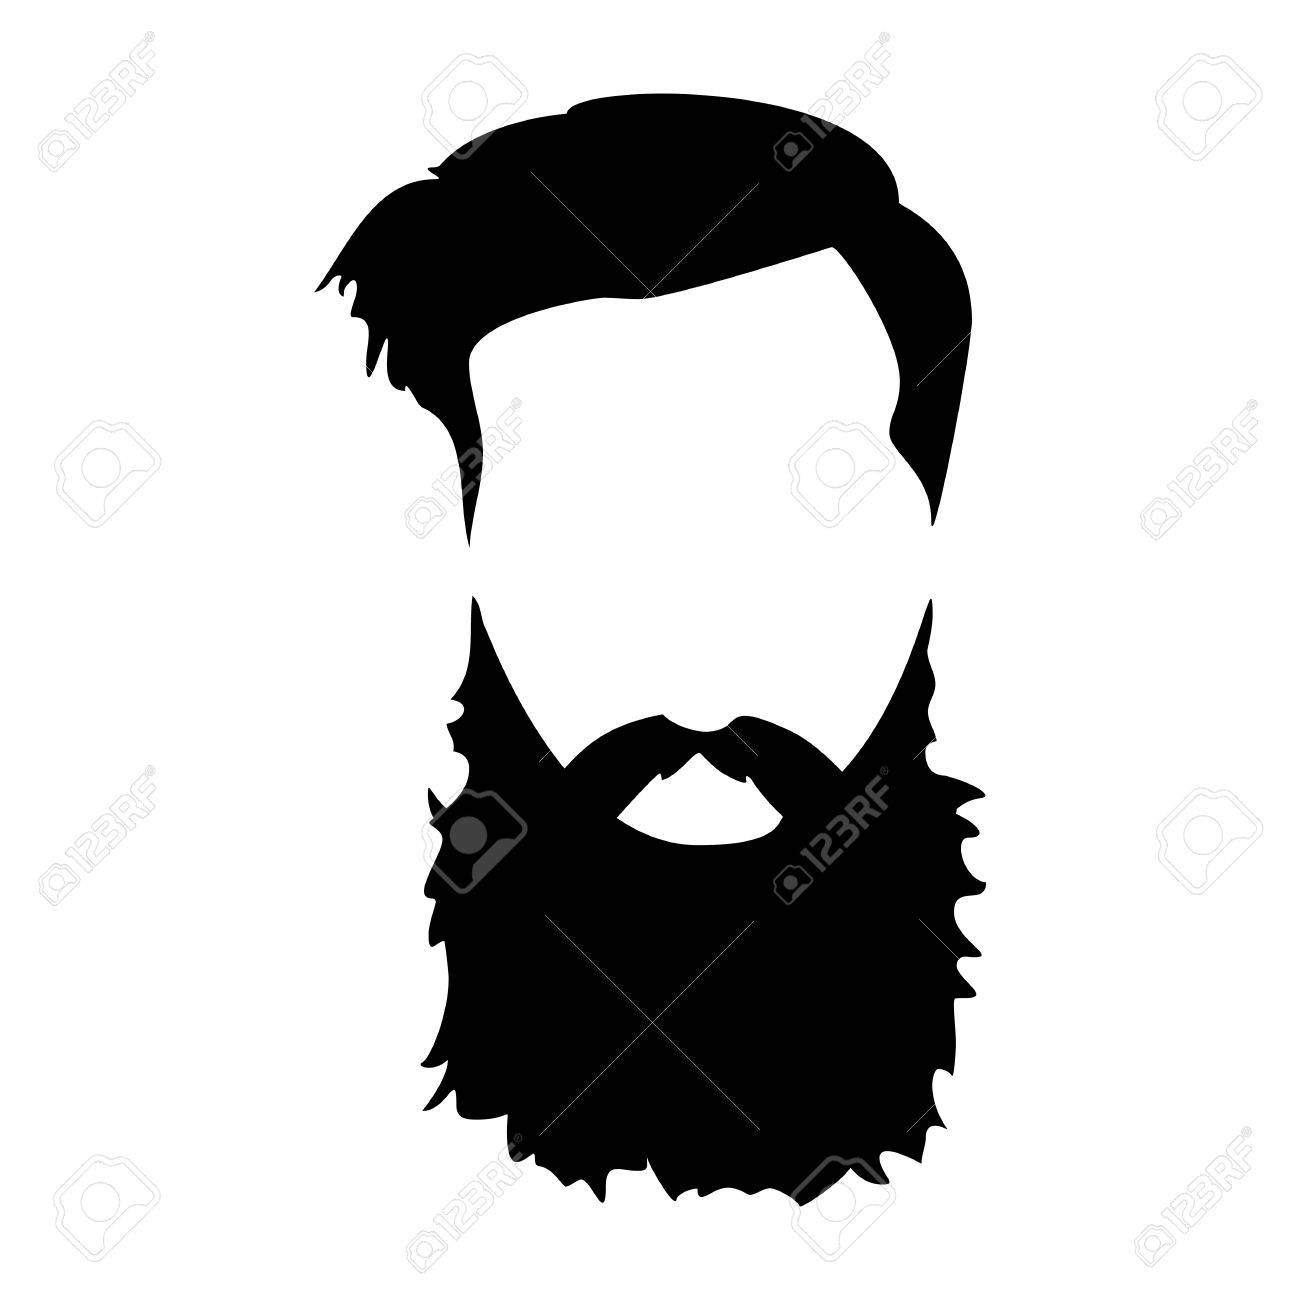 Long beard clipart graphic free library Hipster detailed hair and beards set. Fashion bearded man. Long ... graphic free library